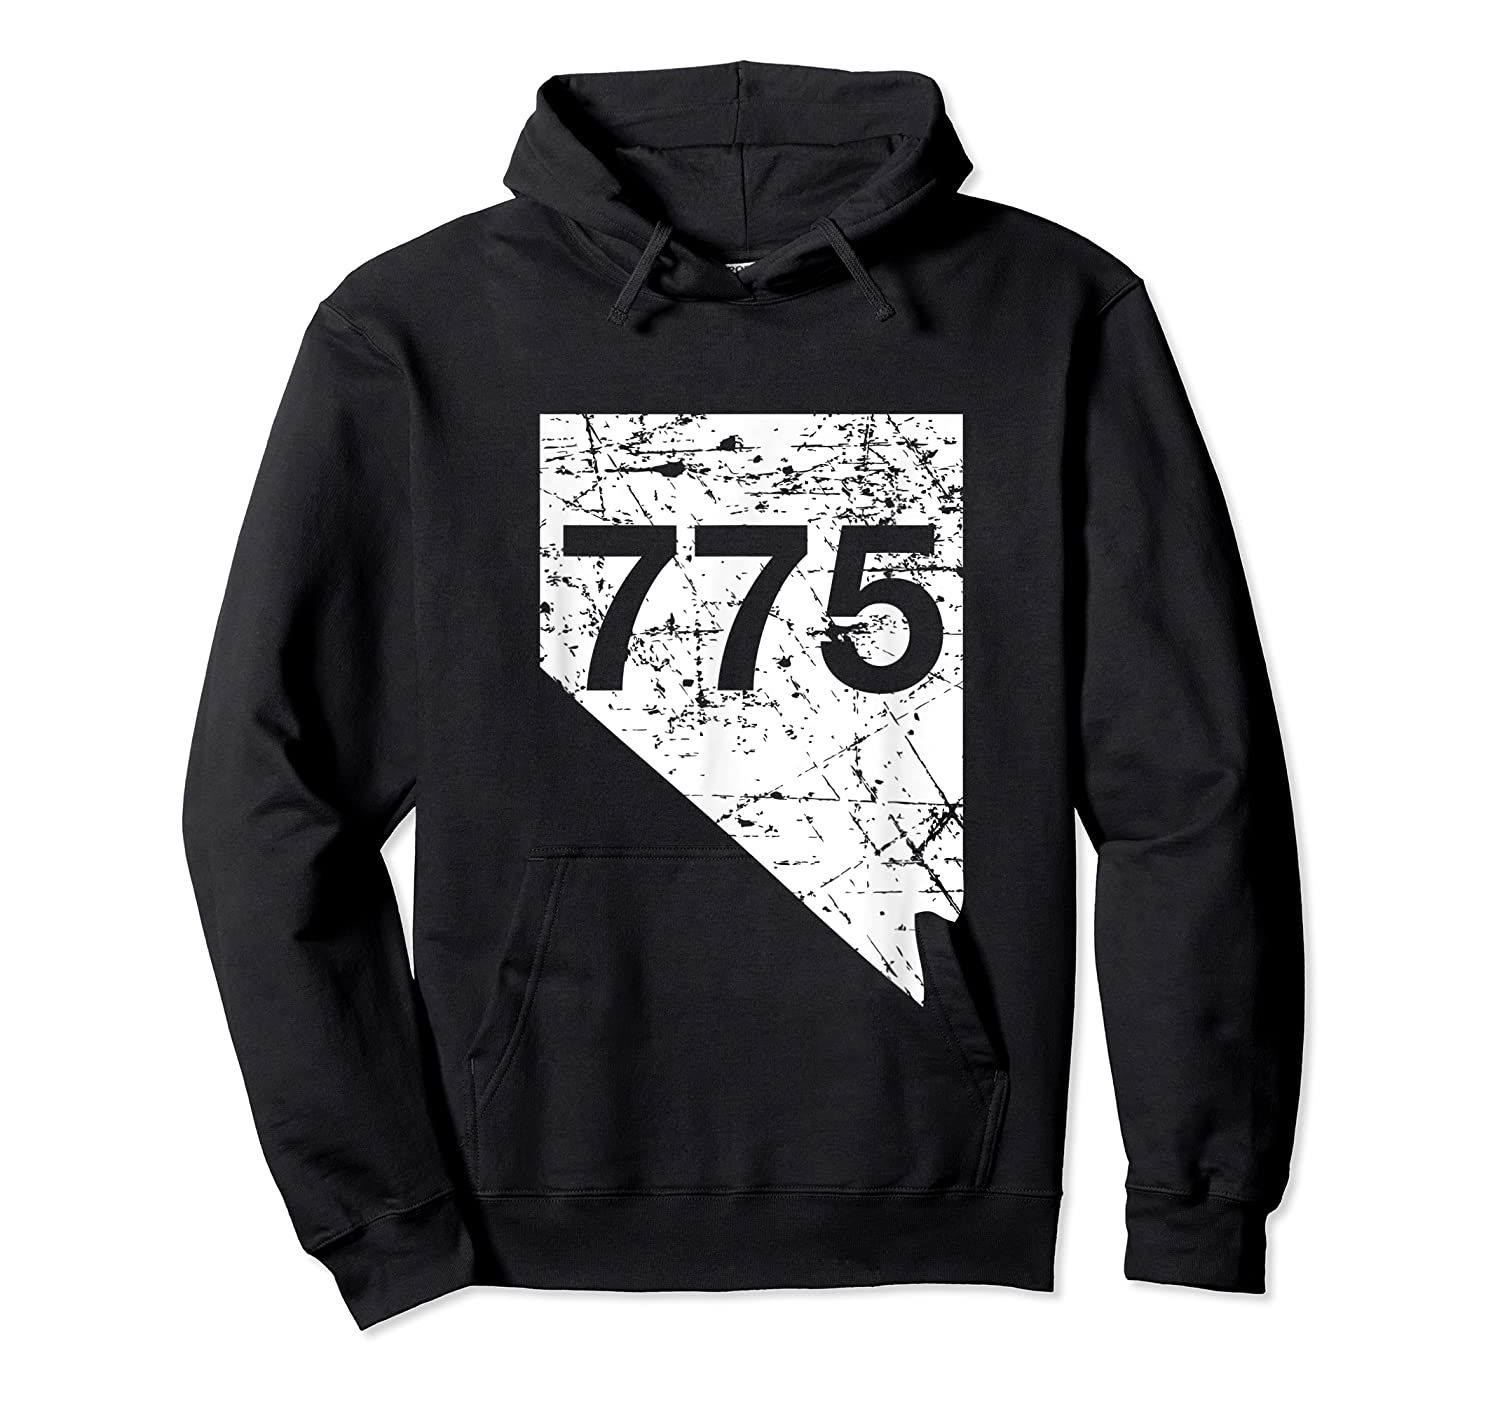 Carson City Reno Sparks Area Code 775 Shirt Nevada Gift Unisex Pullover Hoodie